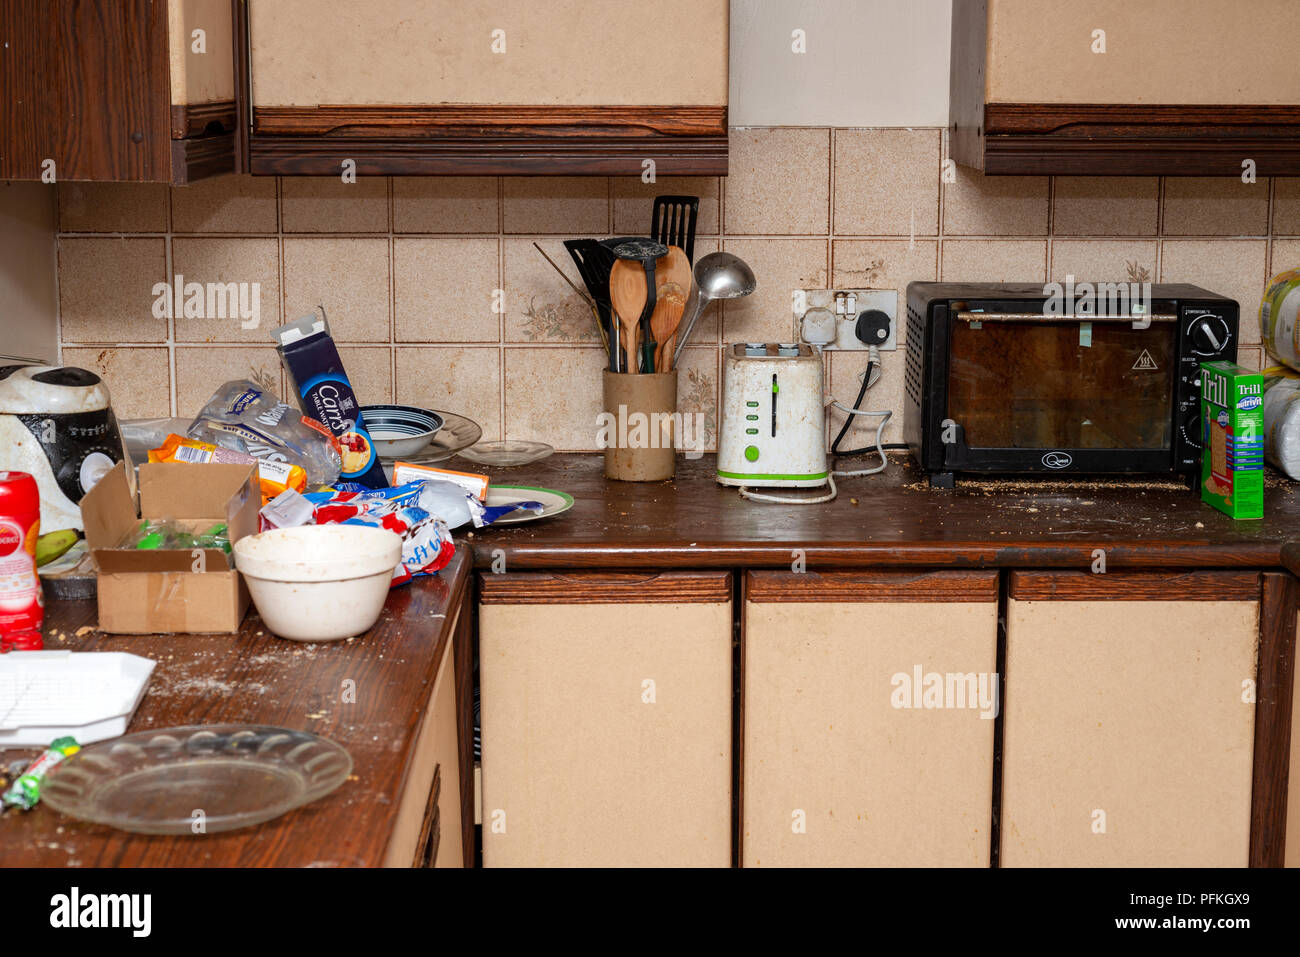 Dirty Kitchen Stock Photos & Dirty Kitchen Stock Images - Alamy on unhealthy kitchen, unkept kitchen, funny back in the kitchen, restaurant kitchen, wet kitchen, ugly kitchen, used kitchen, artisan kitchen, unsanitary kitchen,